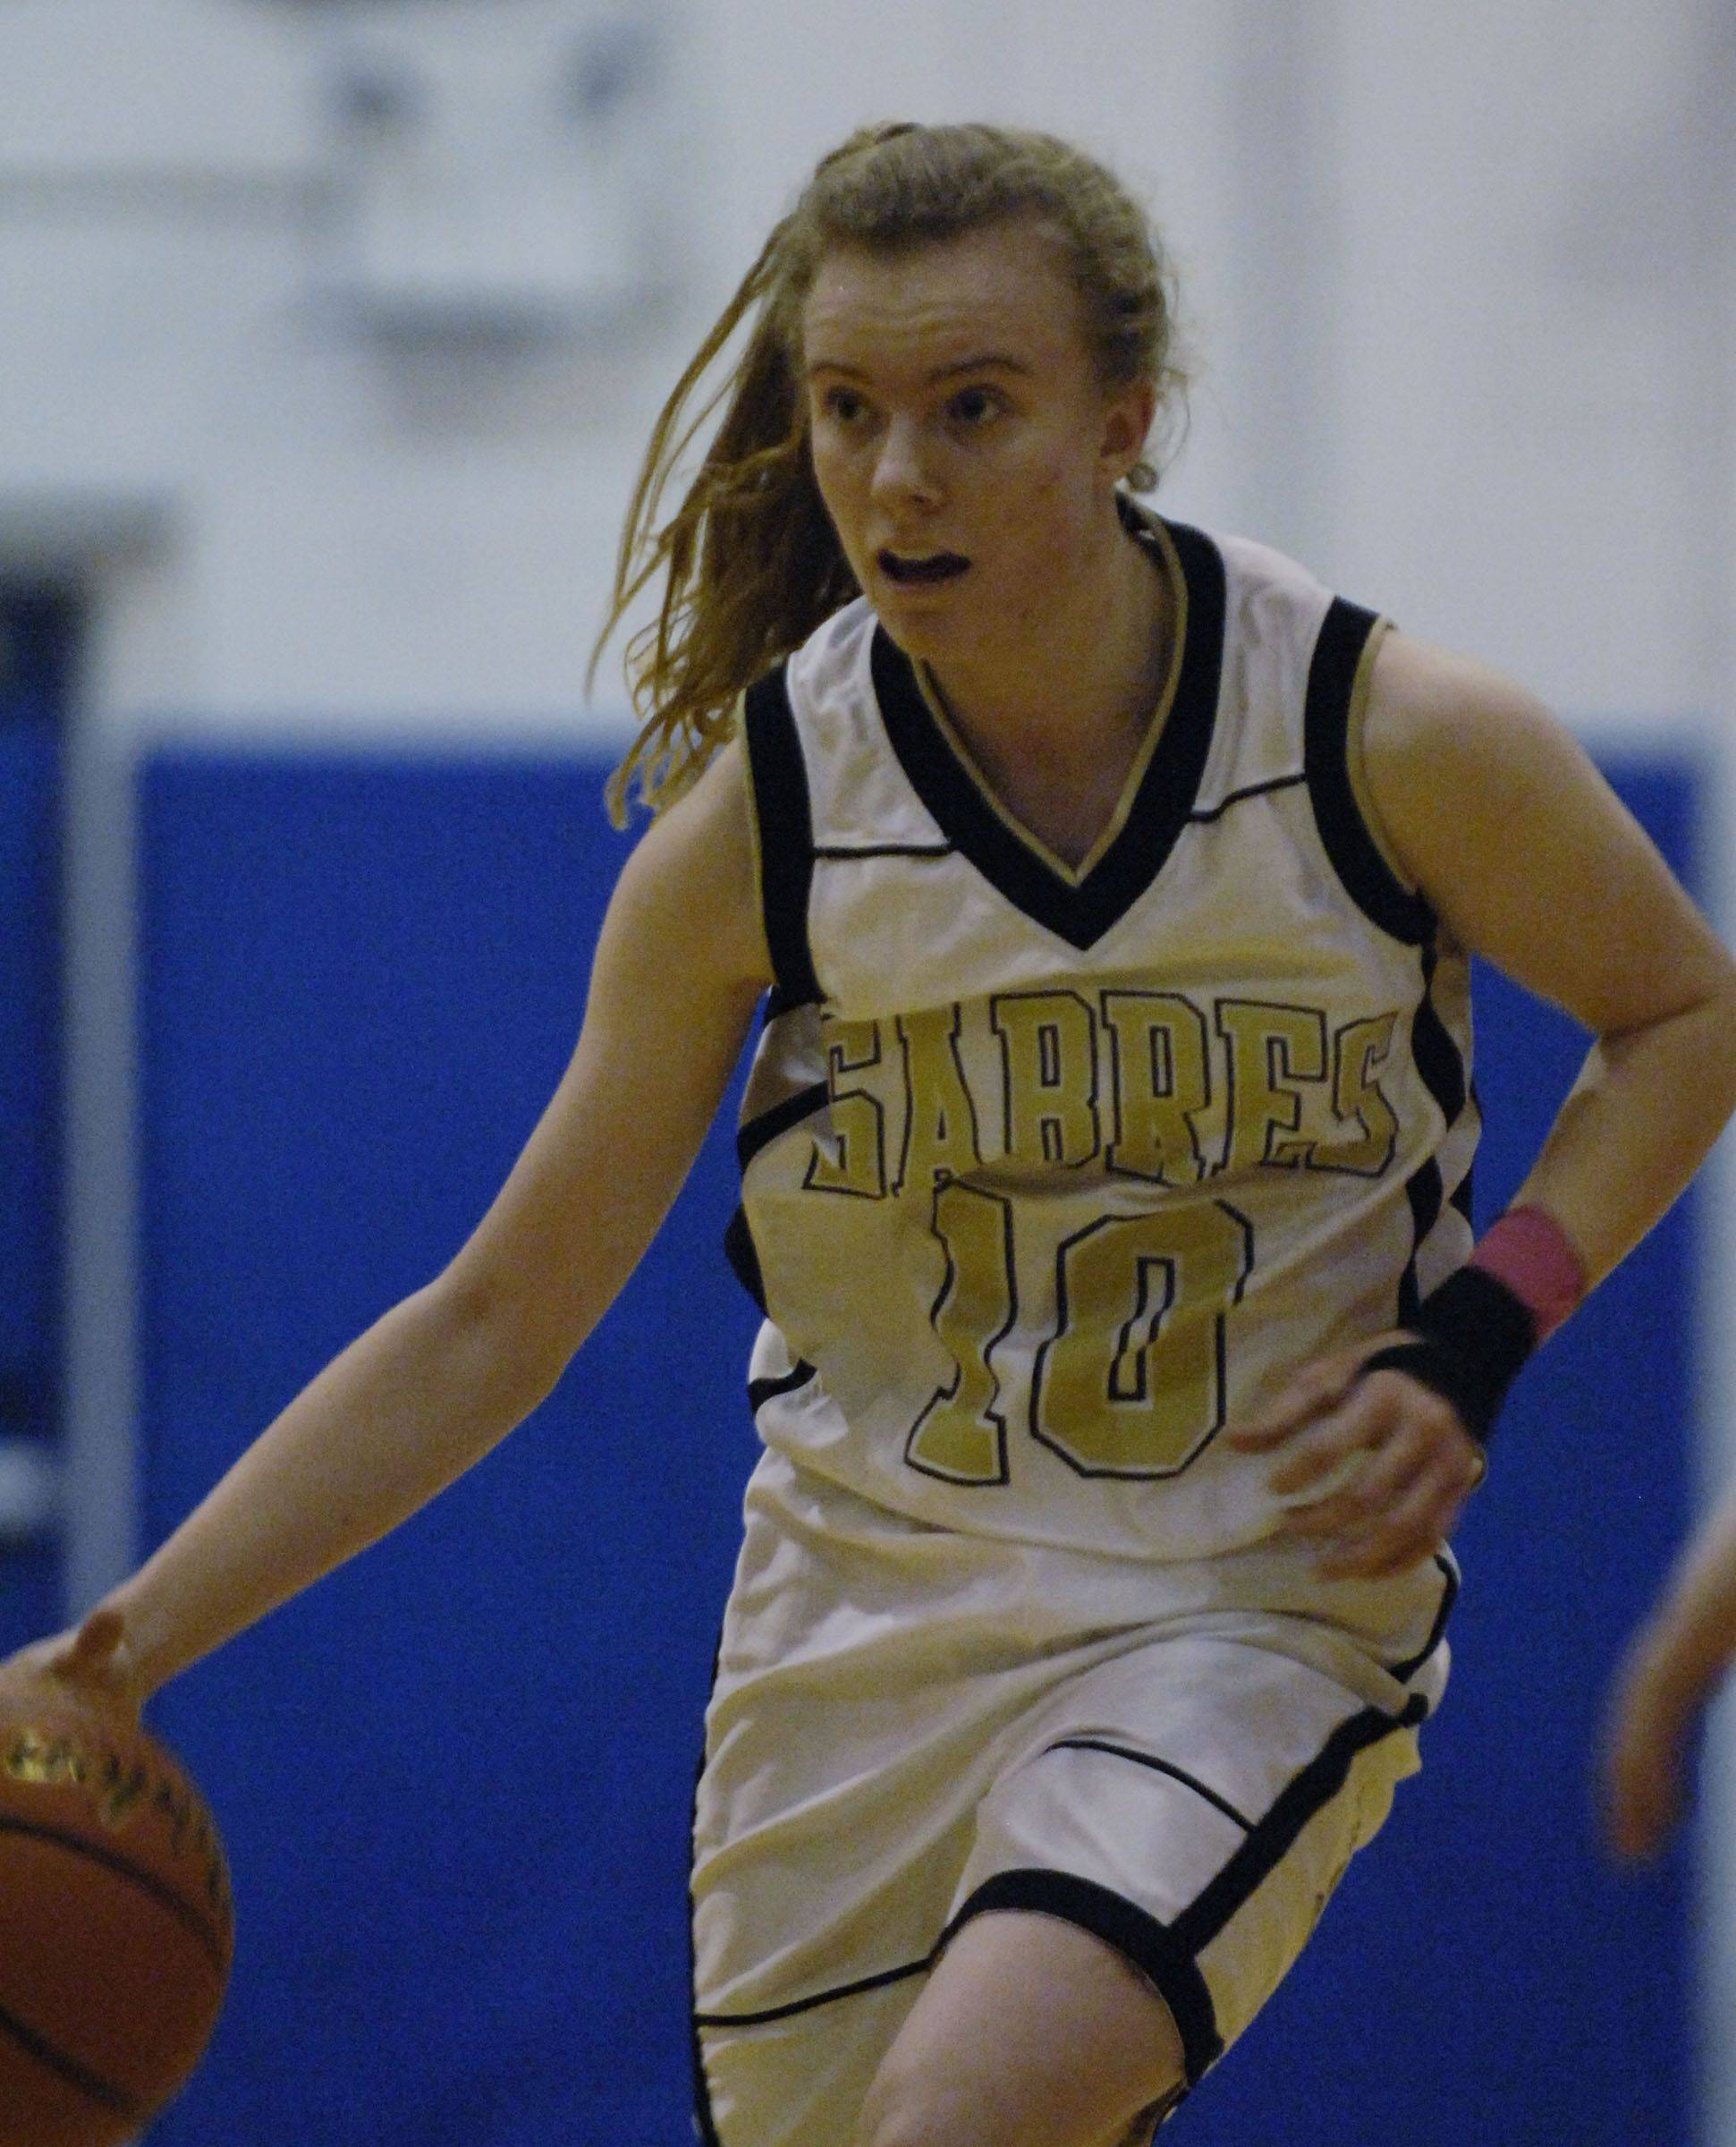 Images: Dundee-Crown vs. Streamwood girls basketball